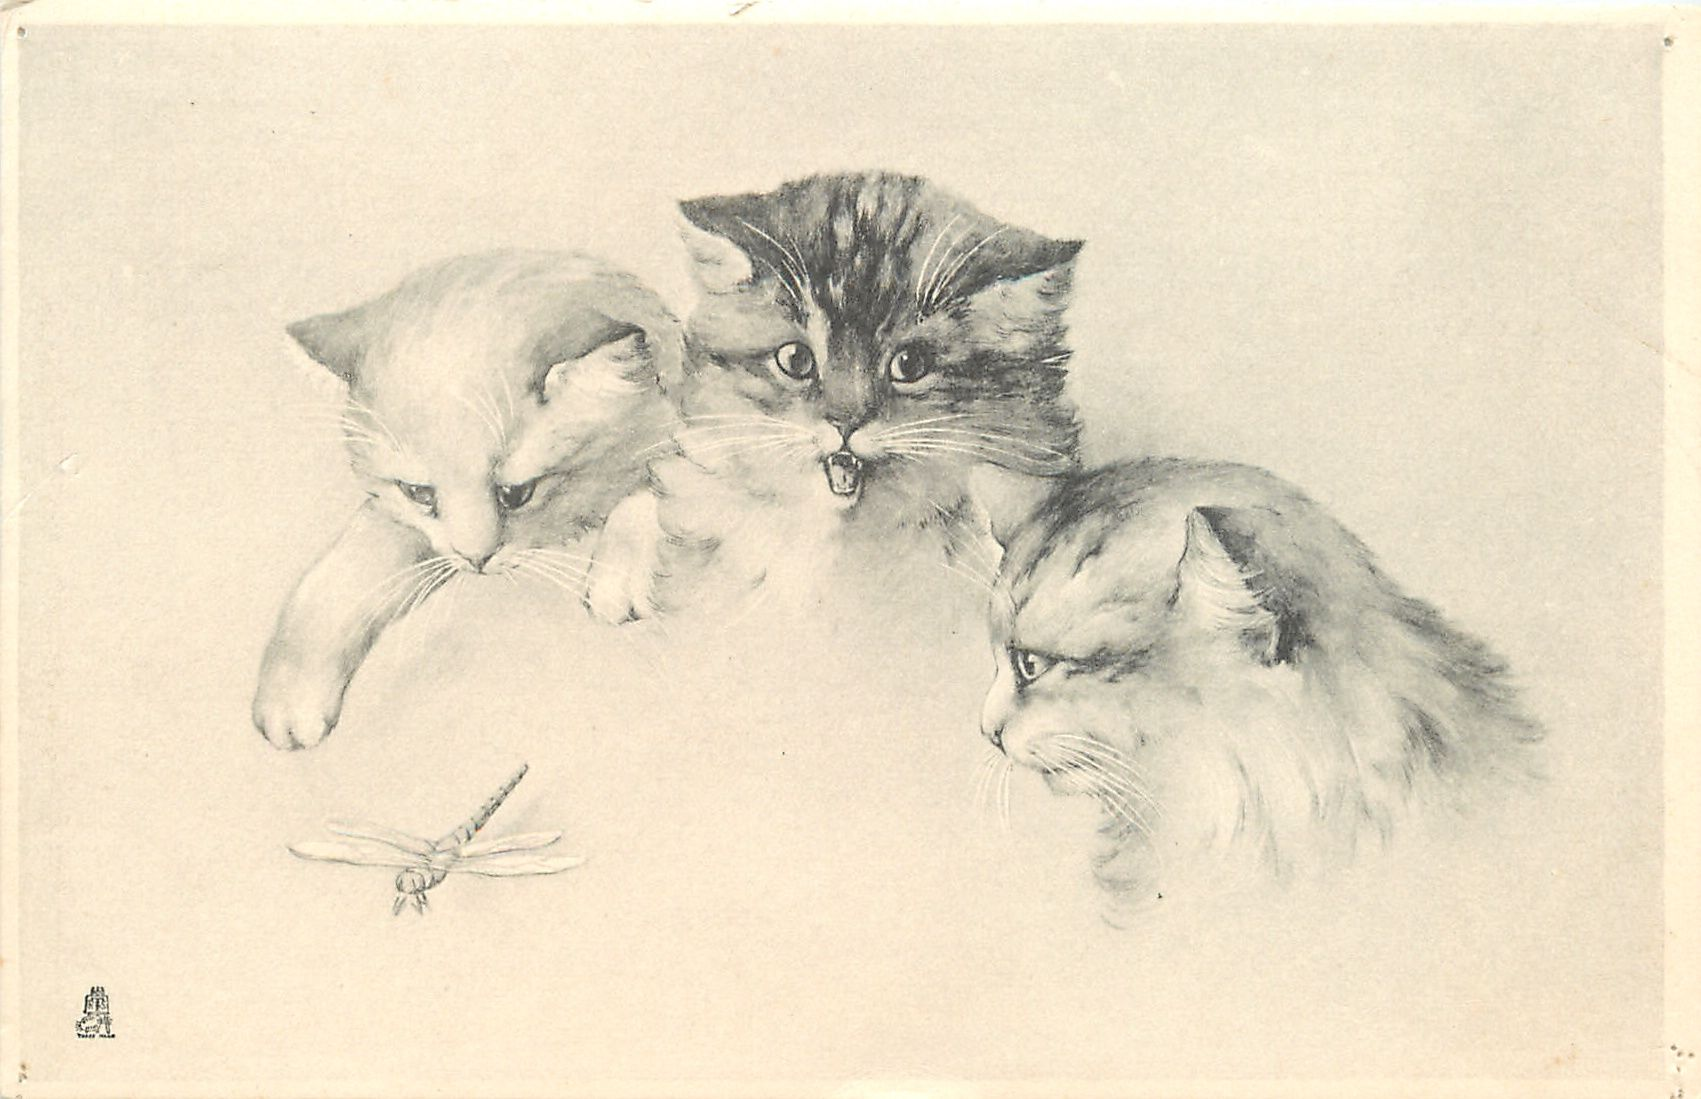 Full Sized Image Heads Of Three Kittens Looking Down On Dragon Fly Tuckdb Cats Illustration Kitten Images Cat Art